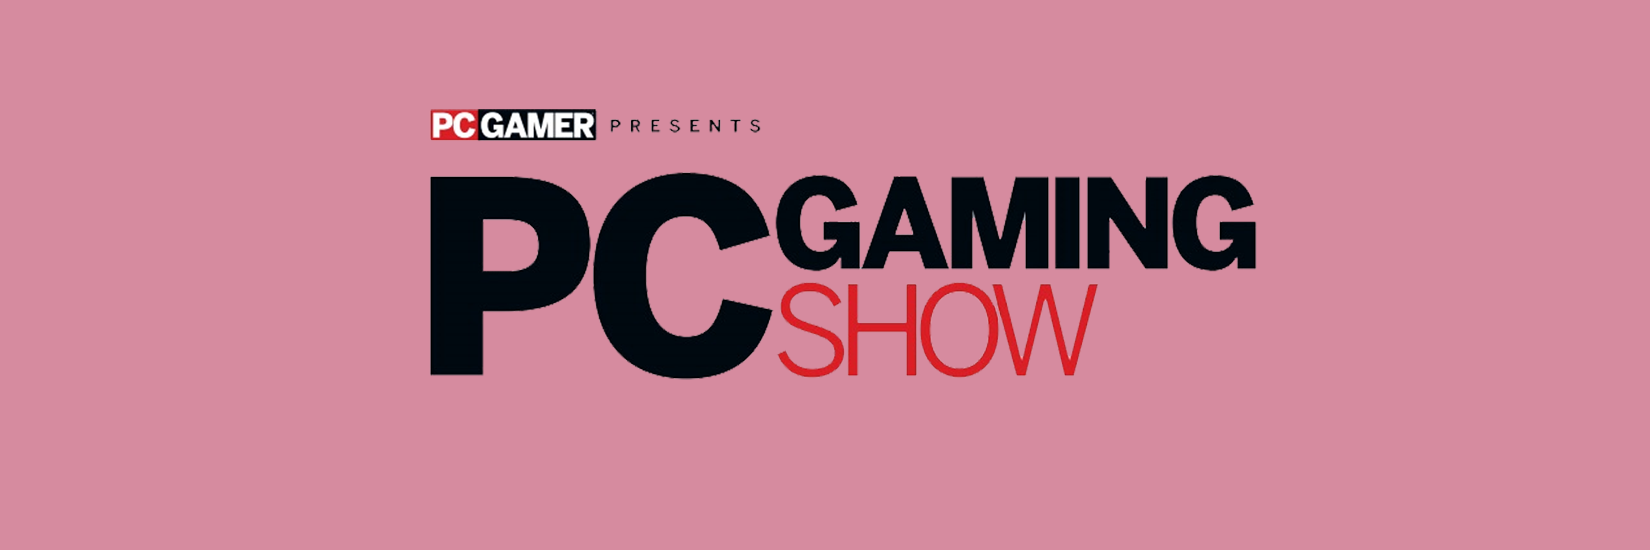 #PCPug #E32019 Resumen de la conferencia de PC Gaming Show